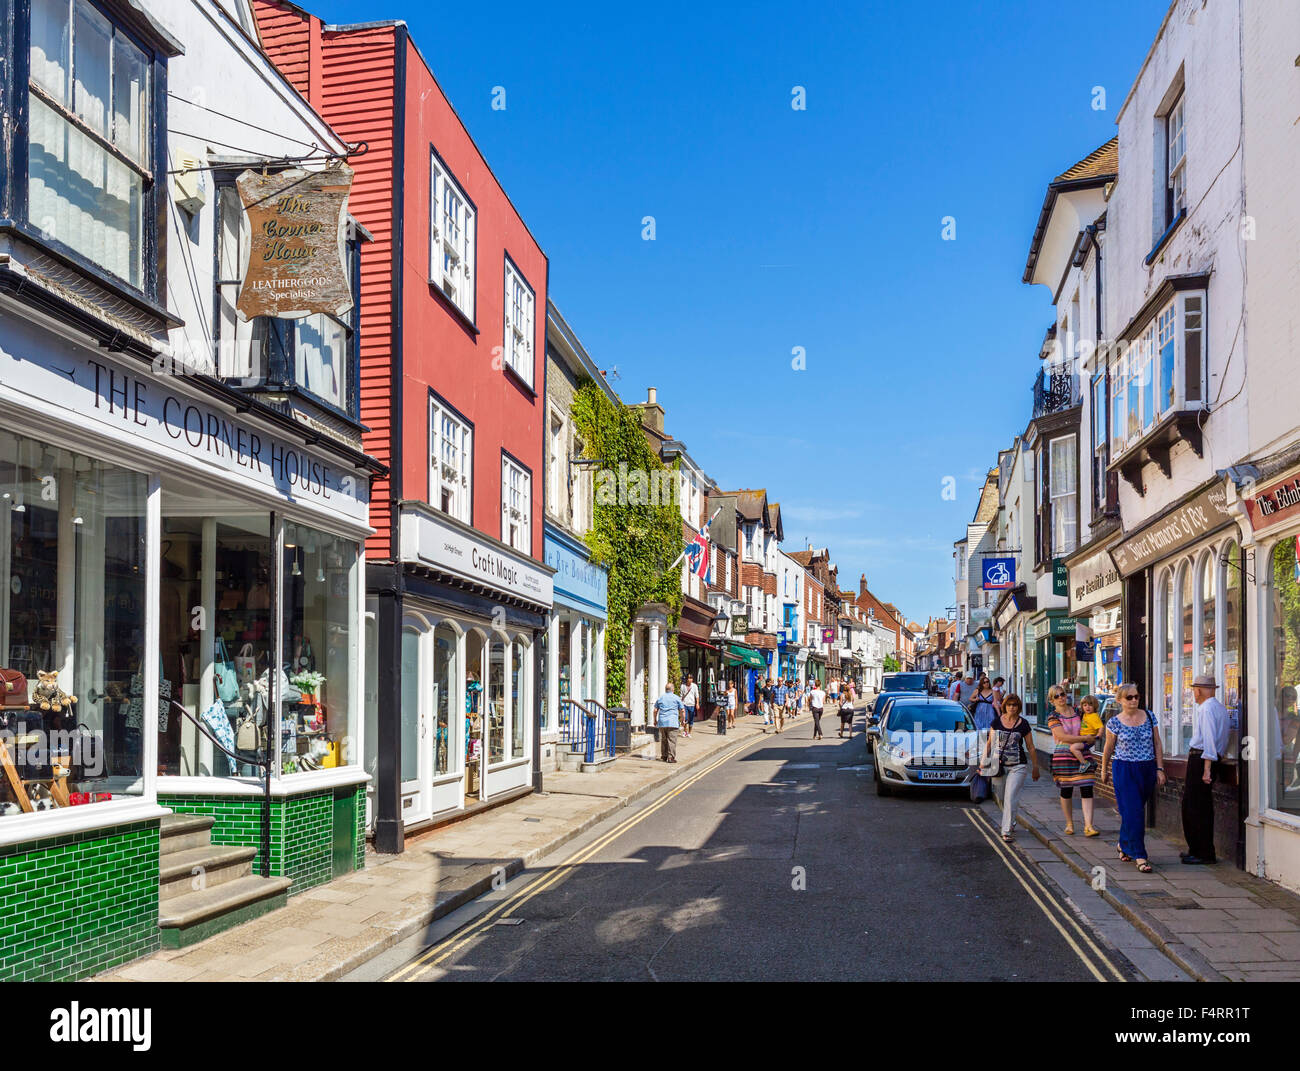 Shops on the High Street in the old town, Rye, East Sussex, England, UK - Stock Image